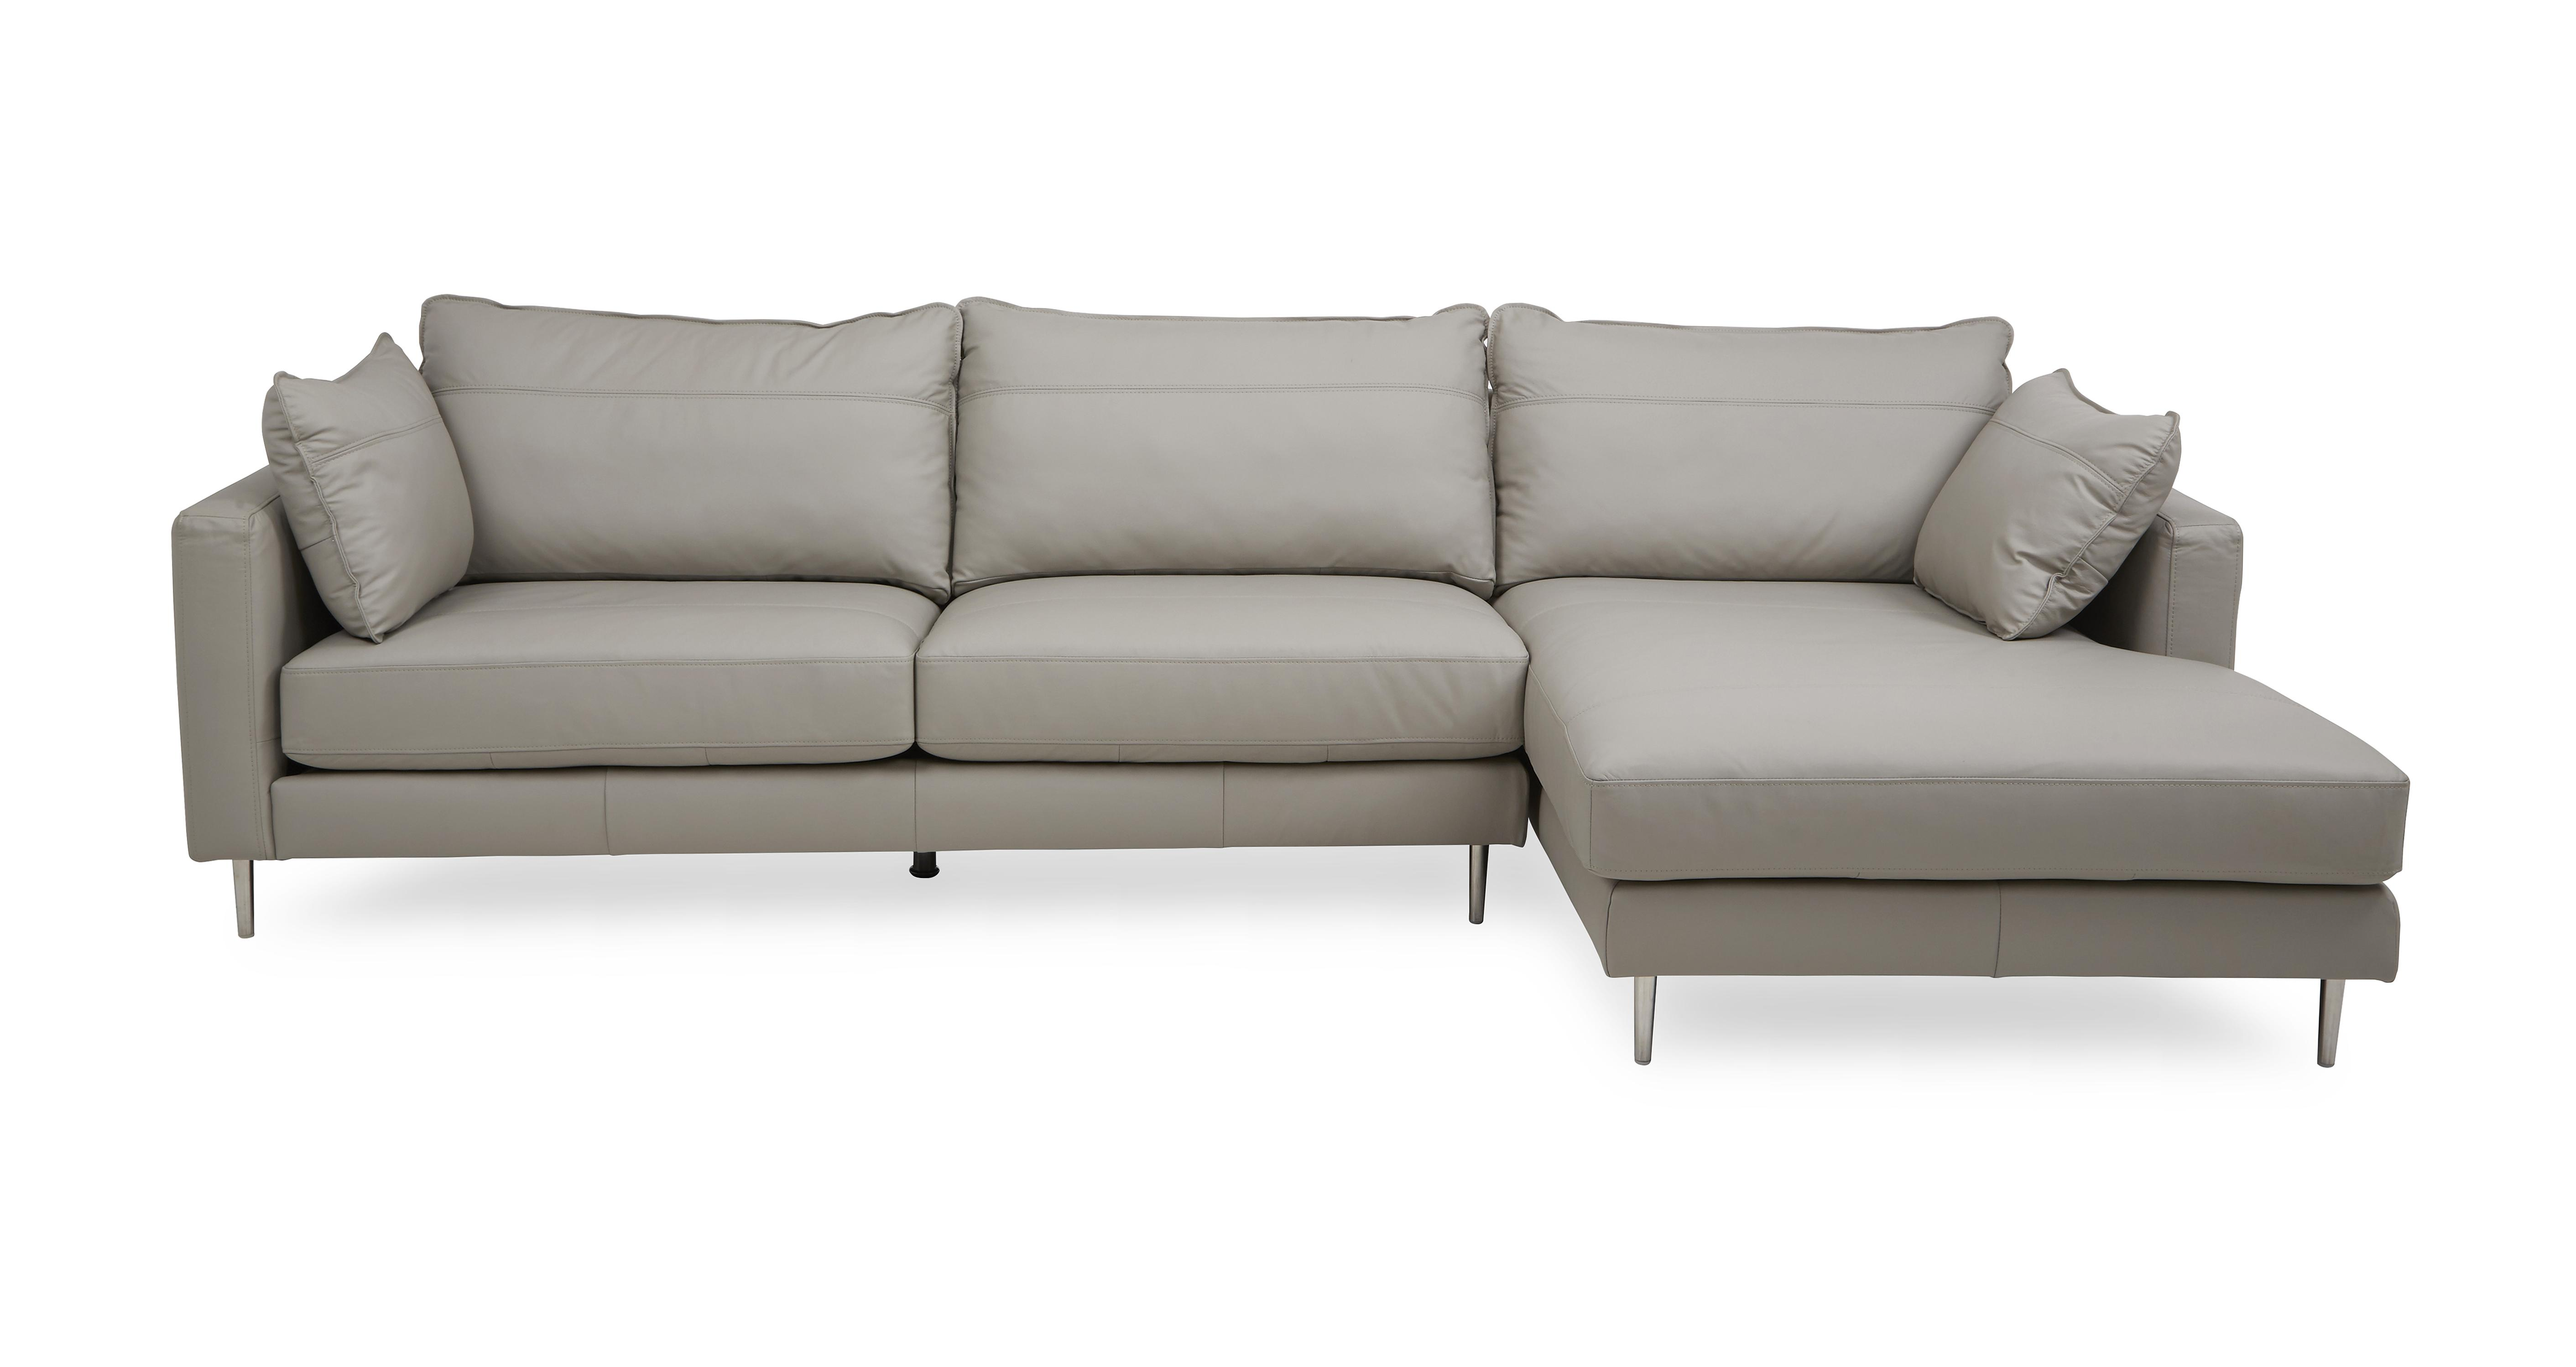 Mazzini right hand facing chaise end sofa peru dfs for Chaise end sofas